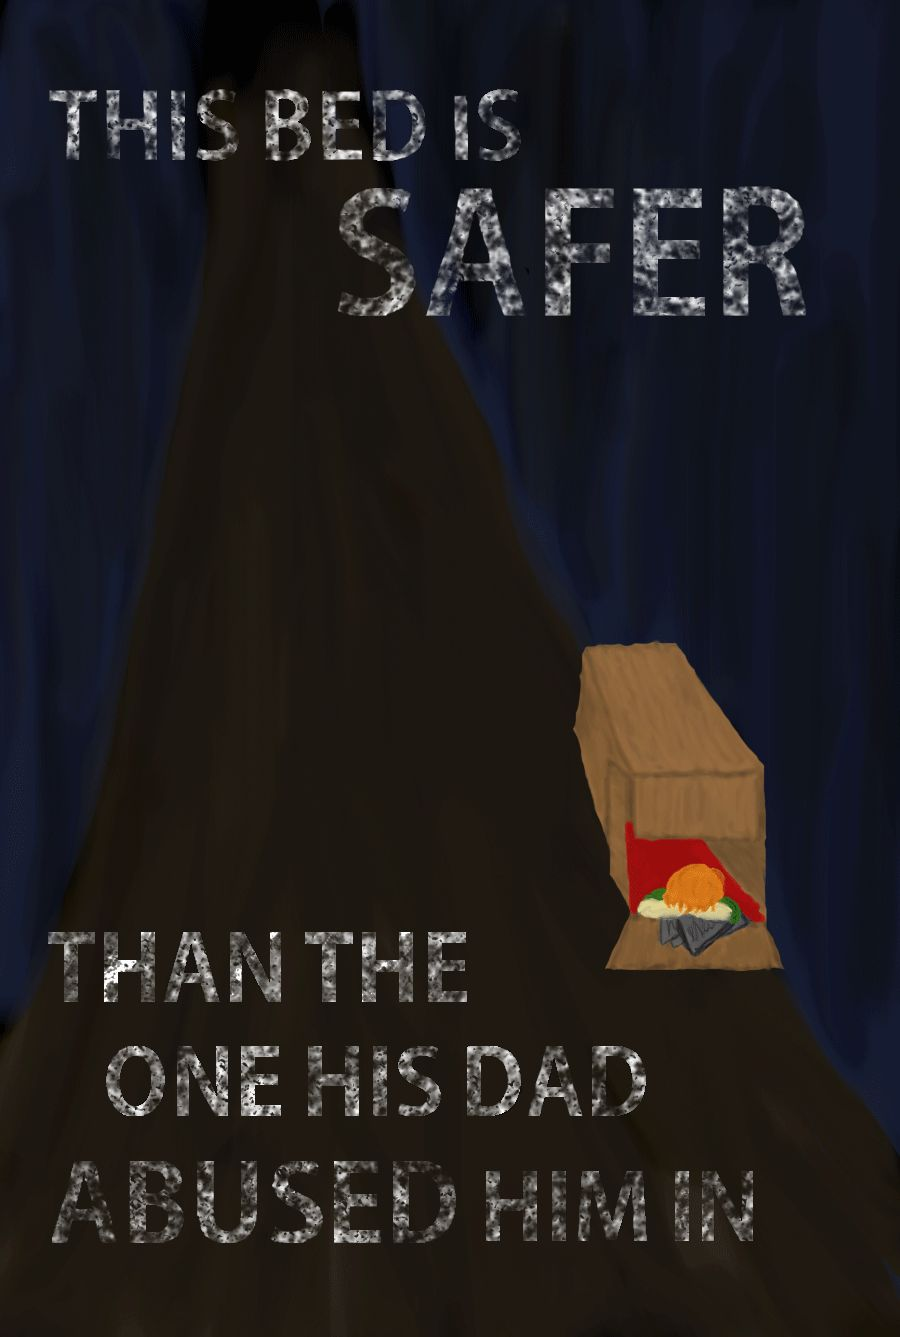 child abuse awareness posters